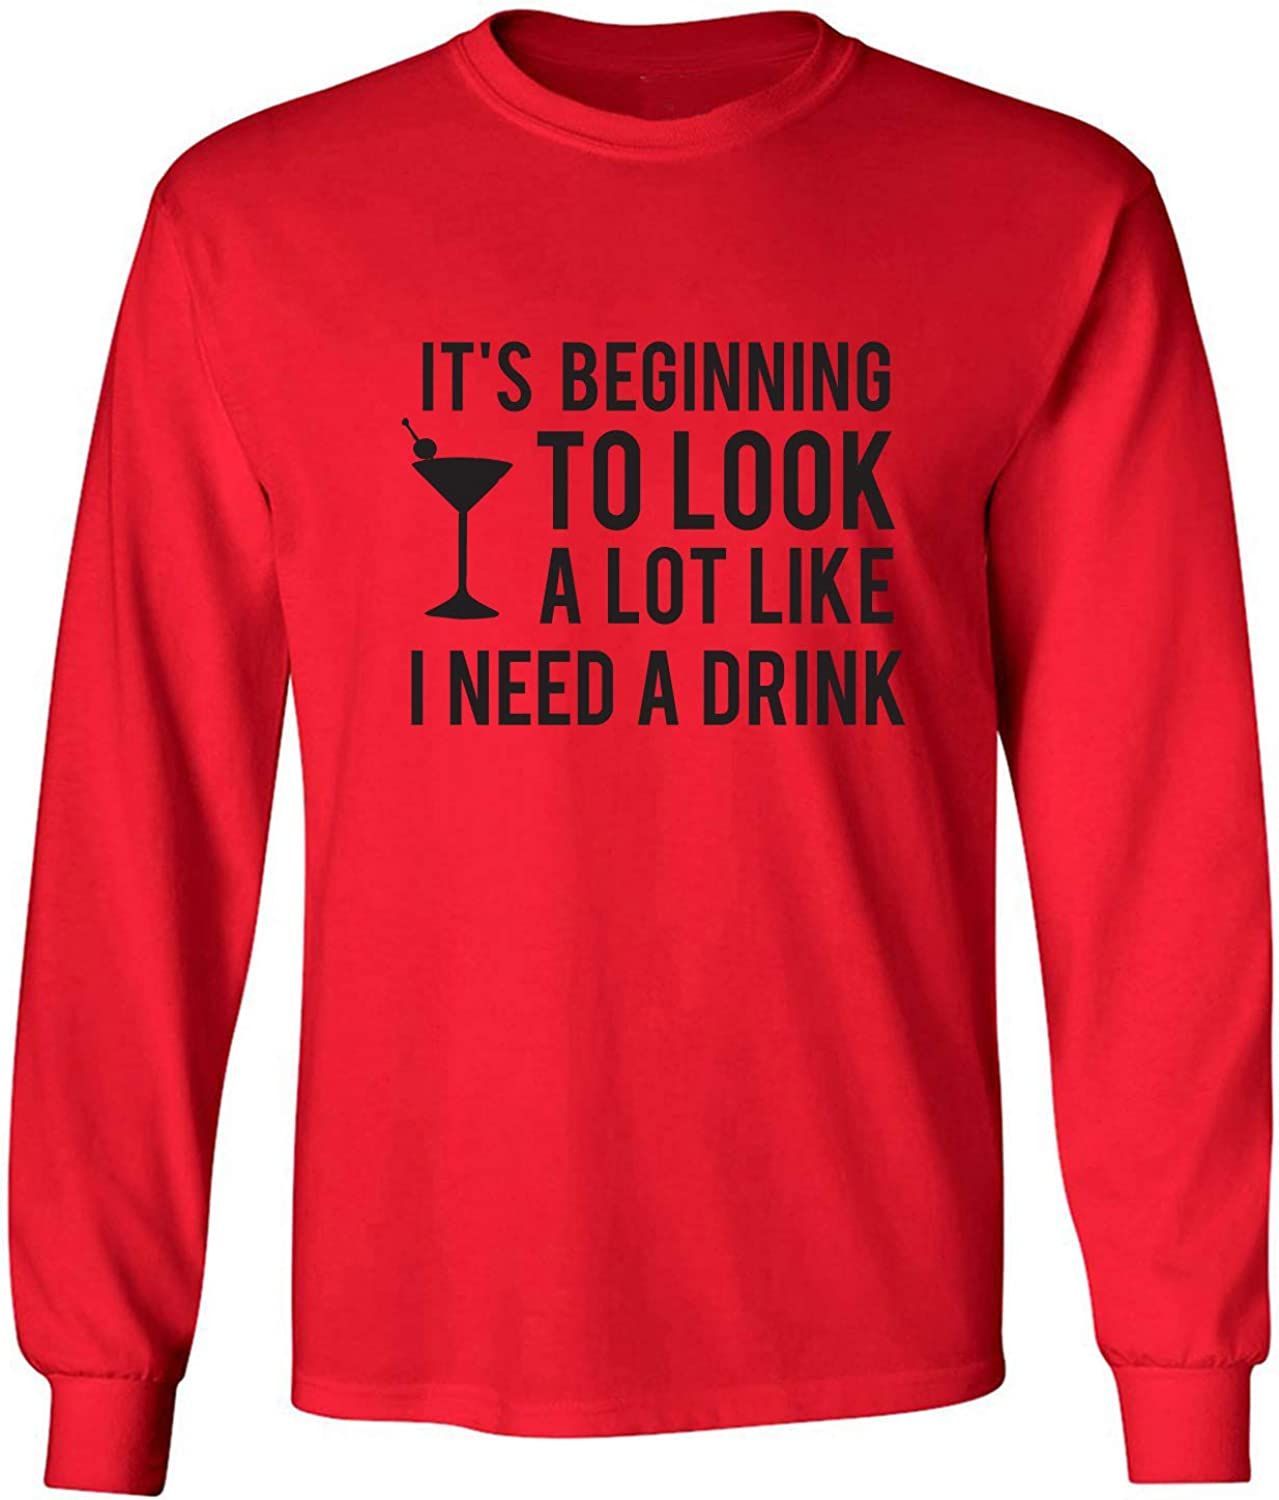 It's Beginning to Look A Lot Like Adult Long Sleeve T-Shirt in Red - XXXX-Large